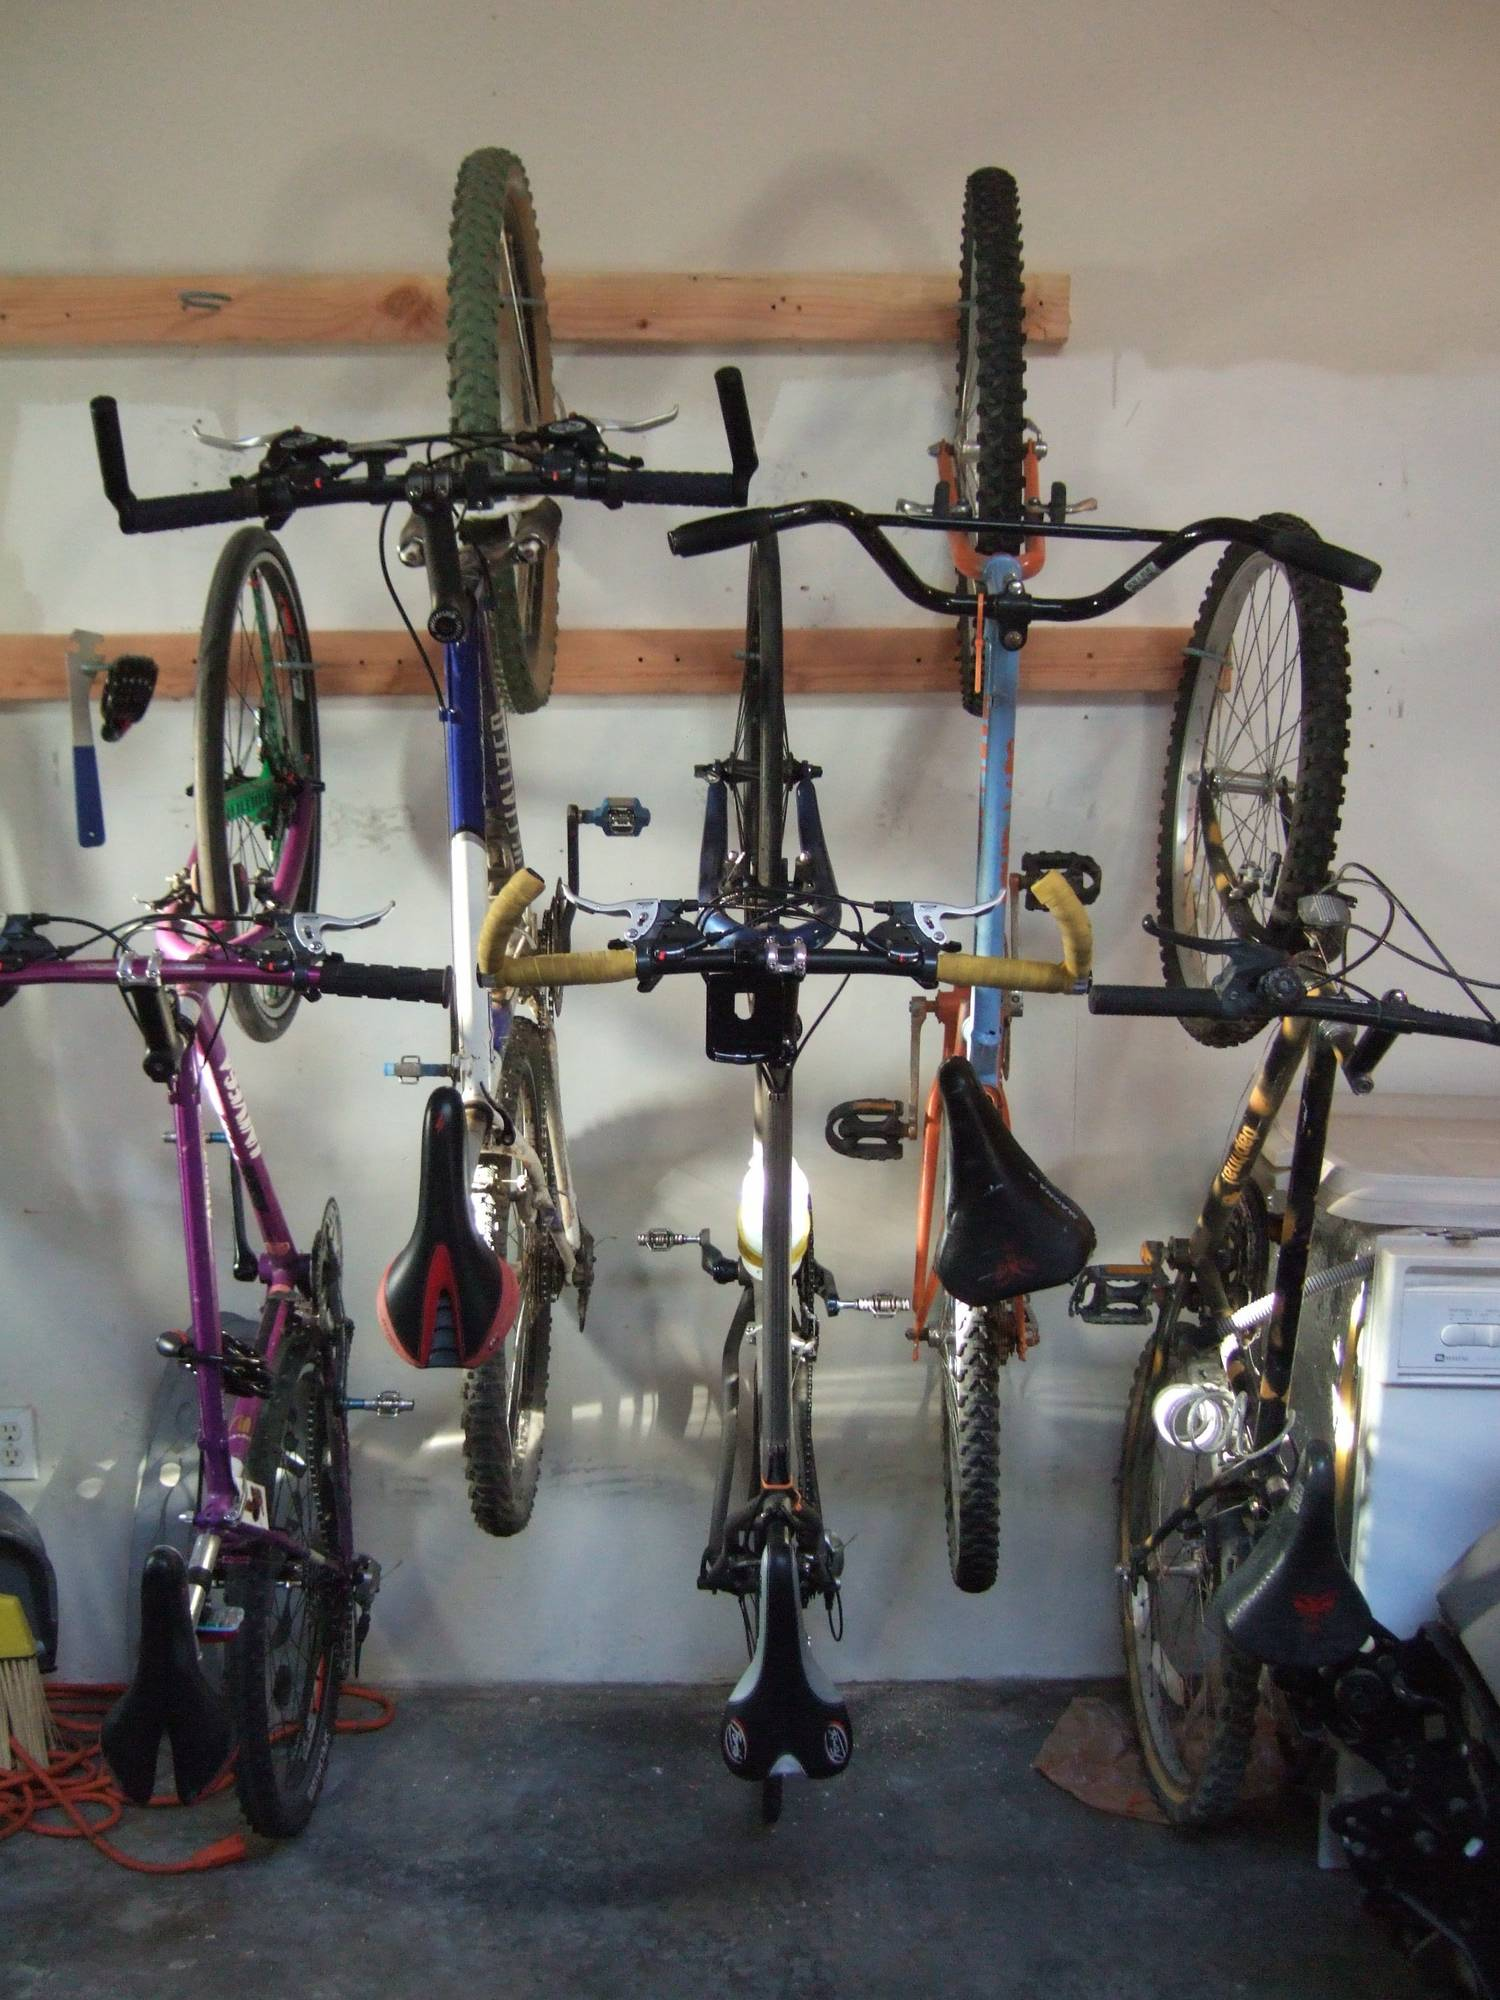 Bike Rack Bike Storage For The Home Or Apartment 8 Steps With Pictures Instructables